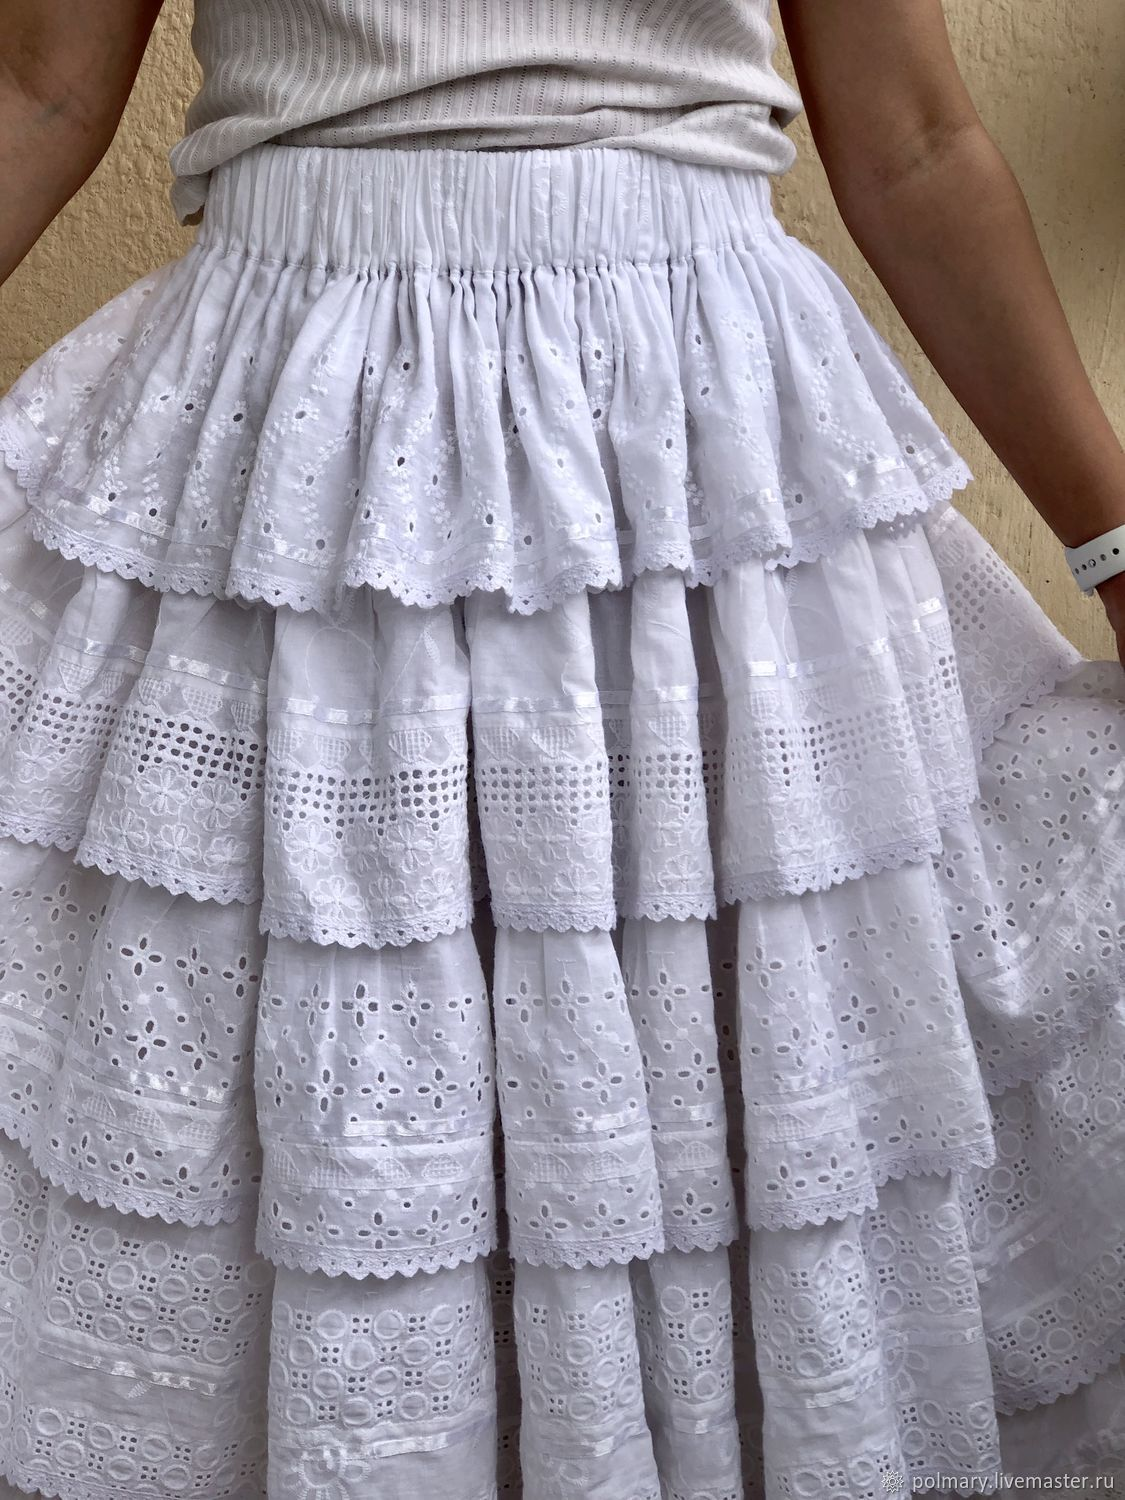 55f54bb7d Skirts handmade. Order Skirt summer lush boho style of white sewing and  lace.